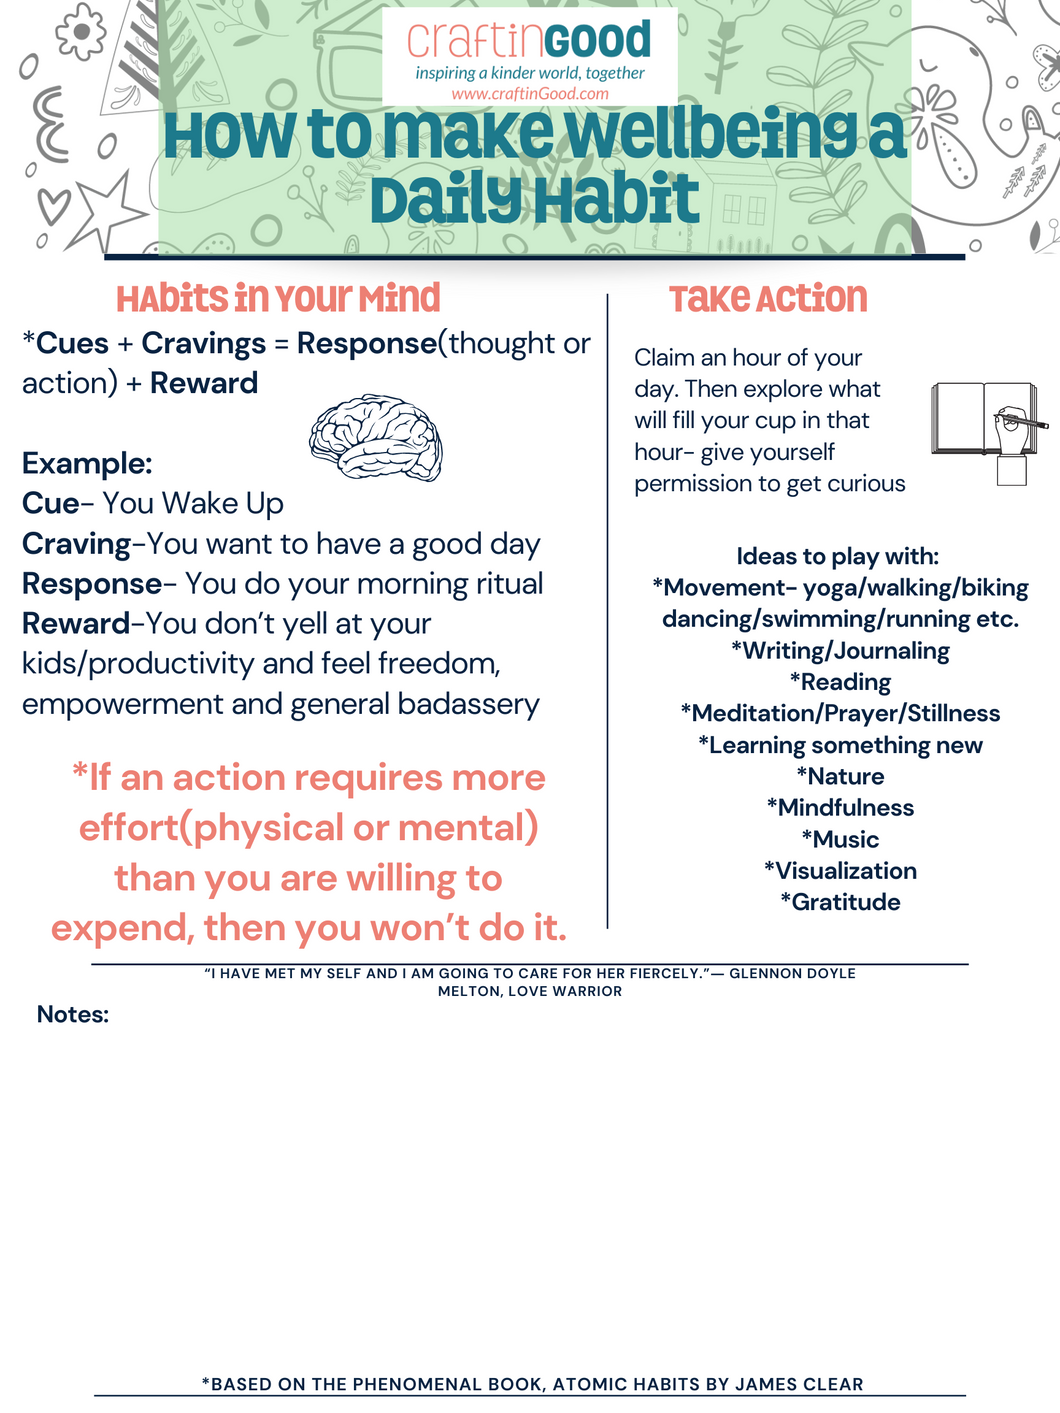 FREE Workshop! How to Make Your Wellbeing a Habit!